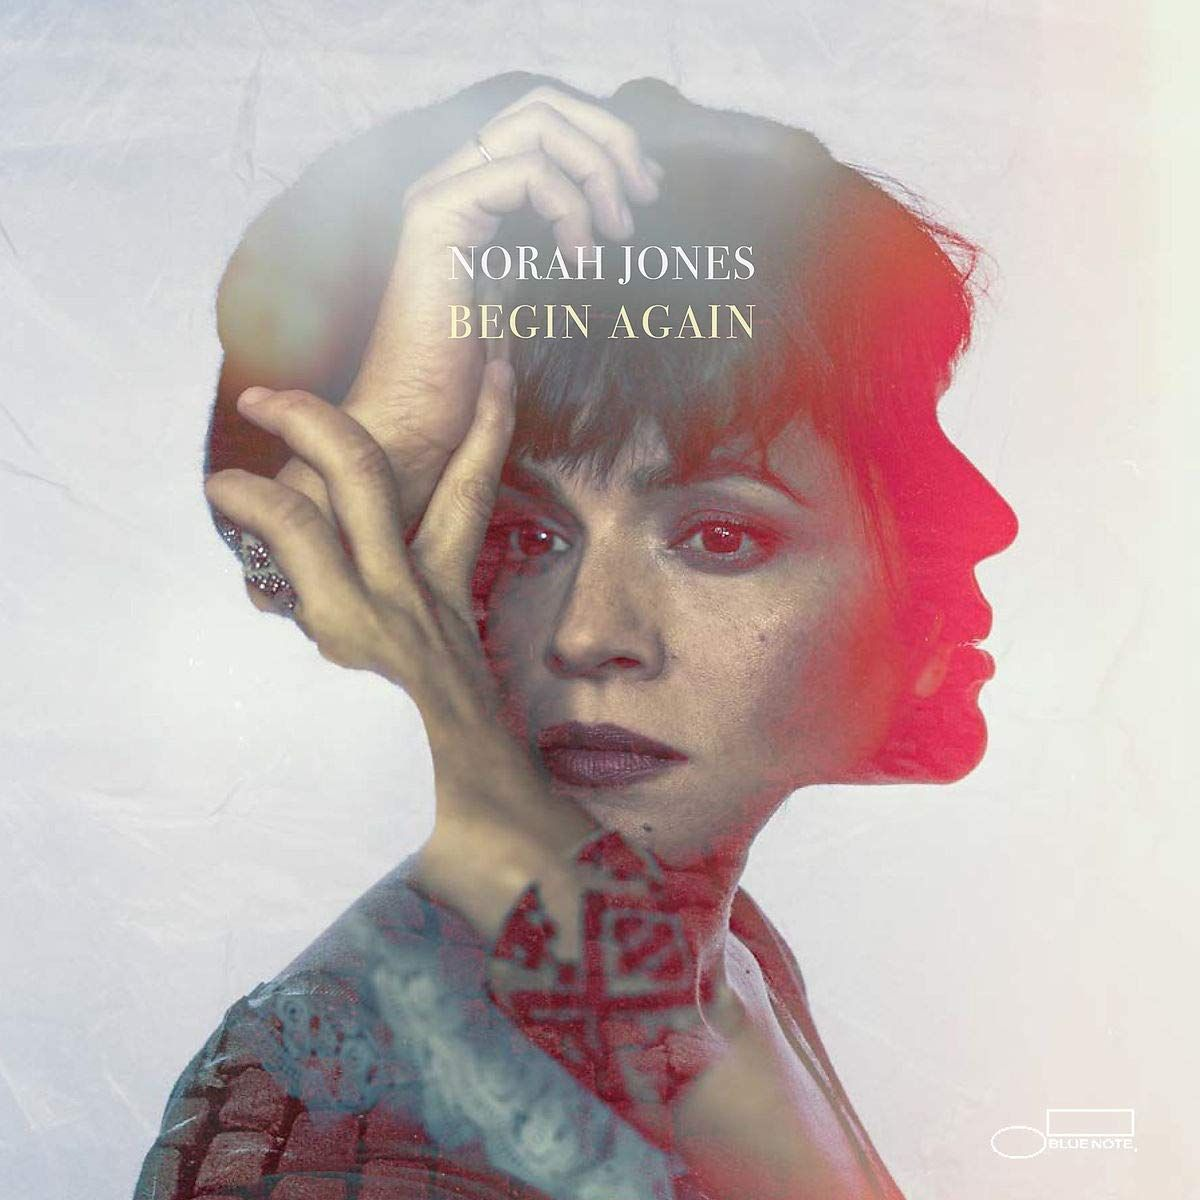 JONES NORAH – Begin Again